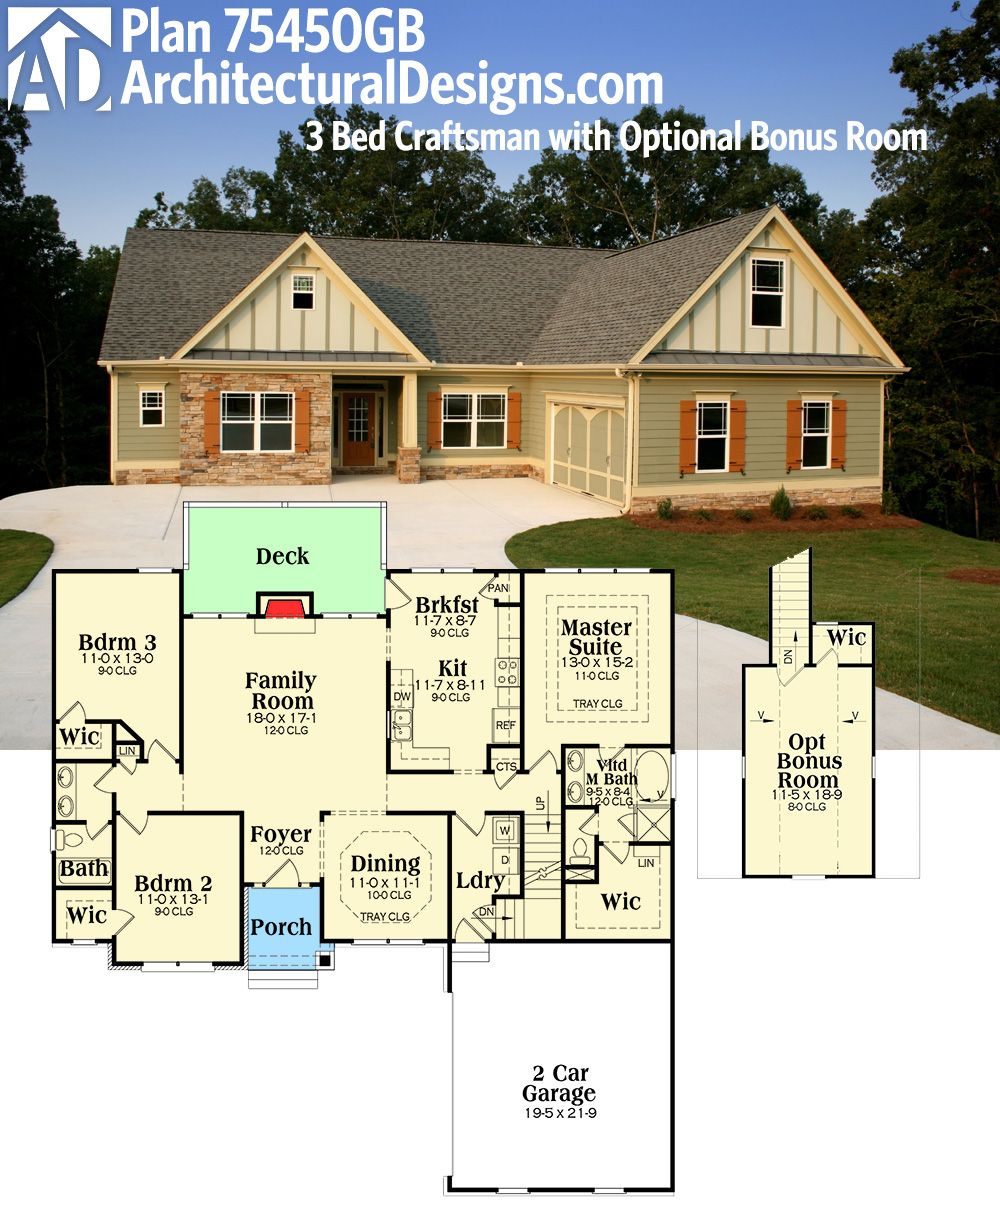 Plan 75450gb 3 bed craftsman with optional bonus room for Home over garage plans